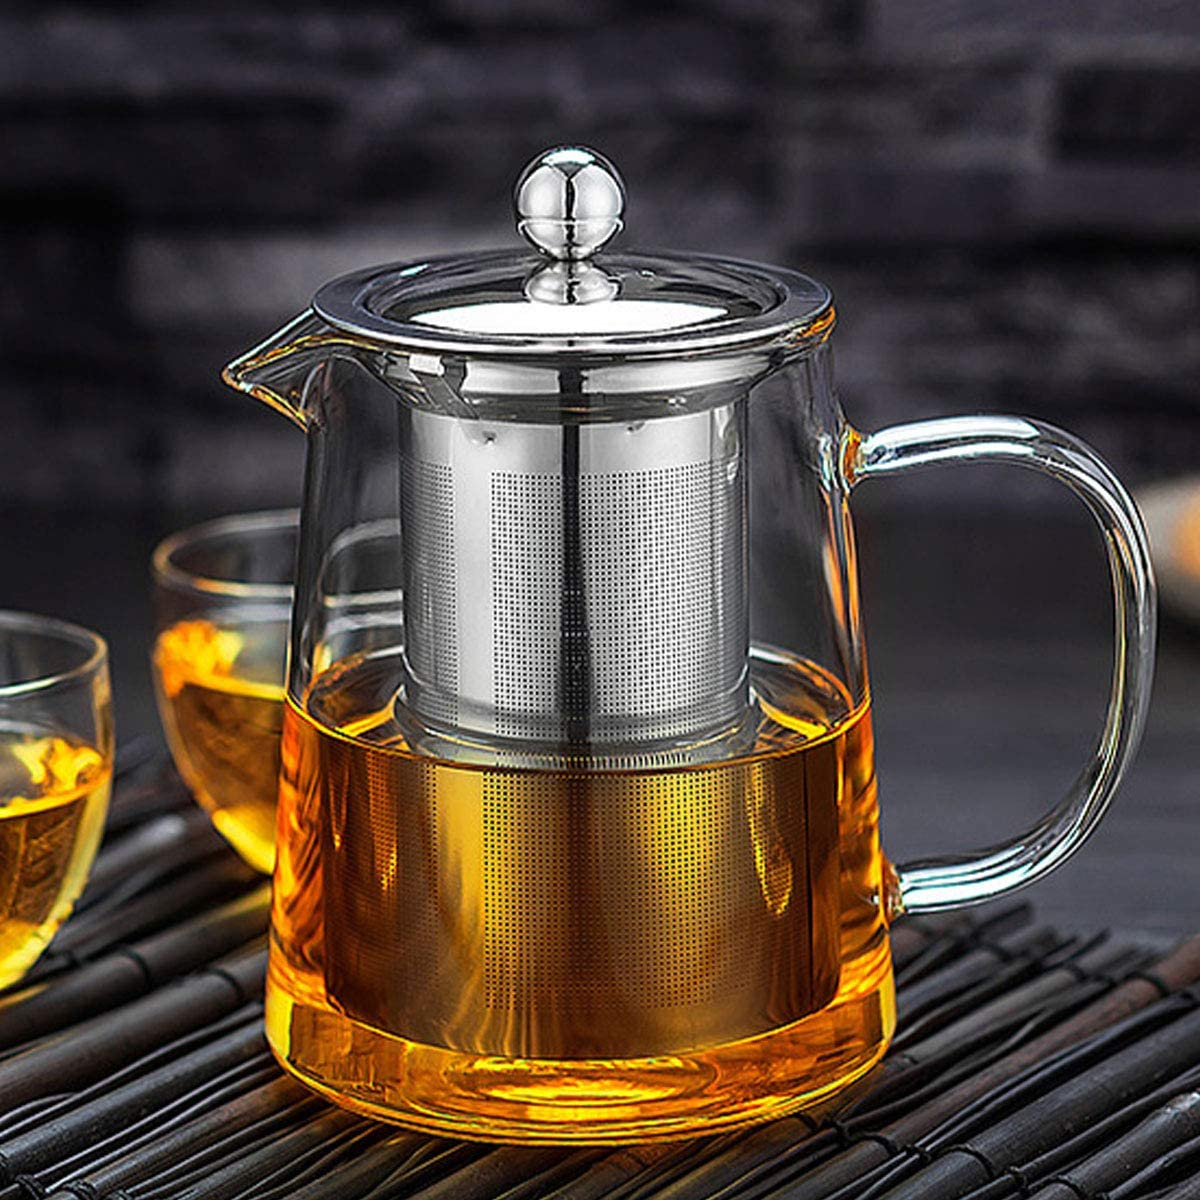 Hiware Good Glass Teapot with Stainless Steel Infuser /& Lid Borosilicate Glas...